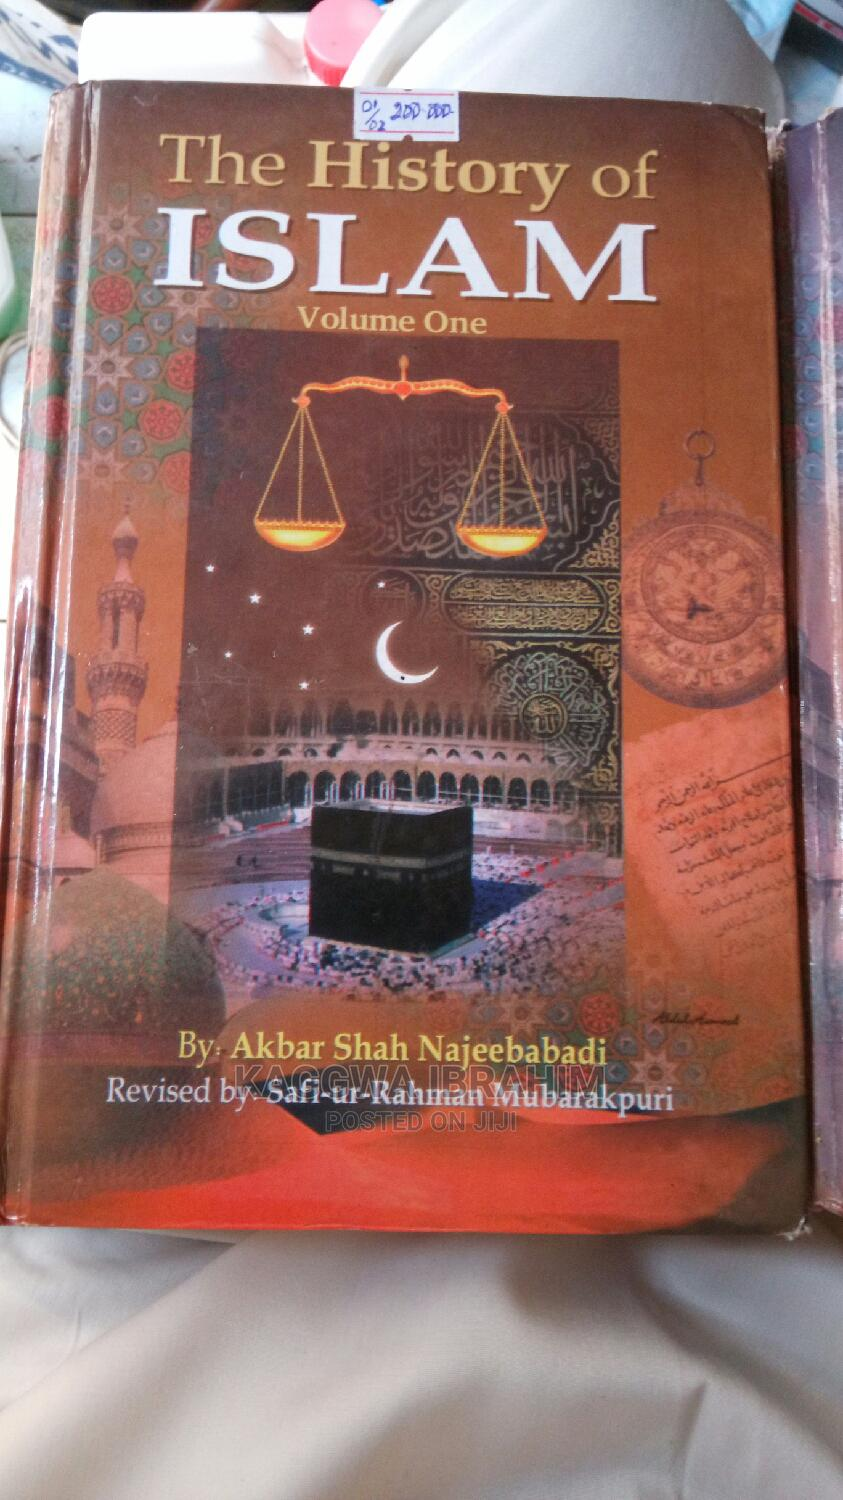 The History of Islam in Two Complete Volumes.